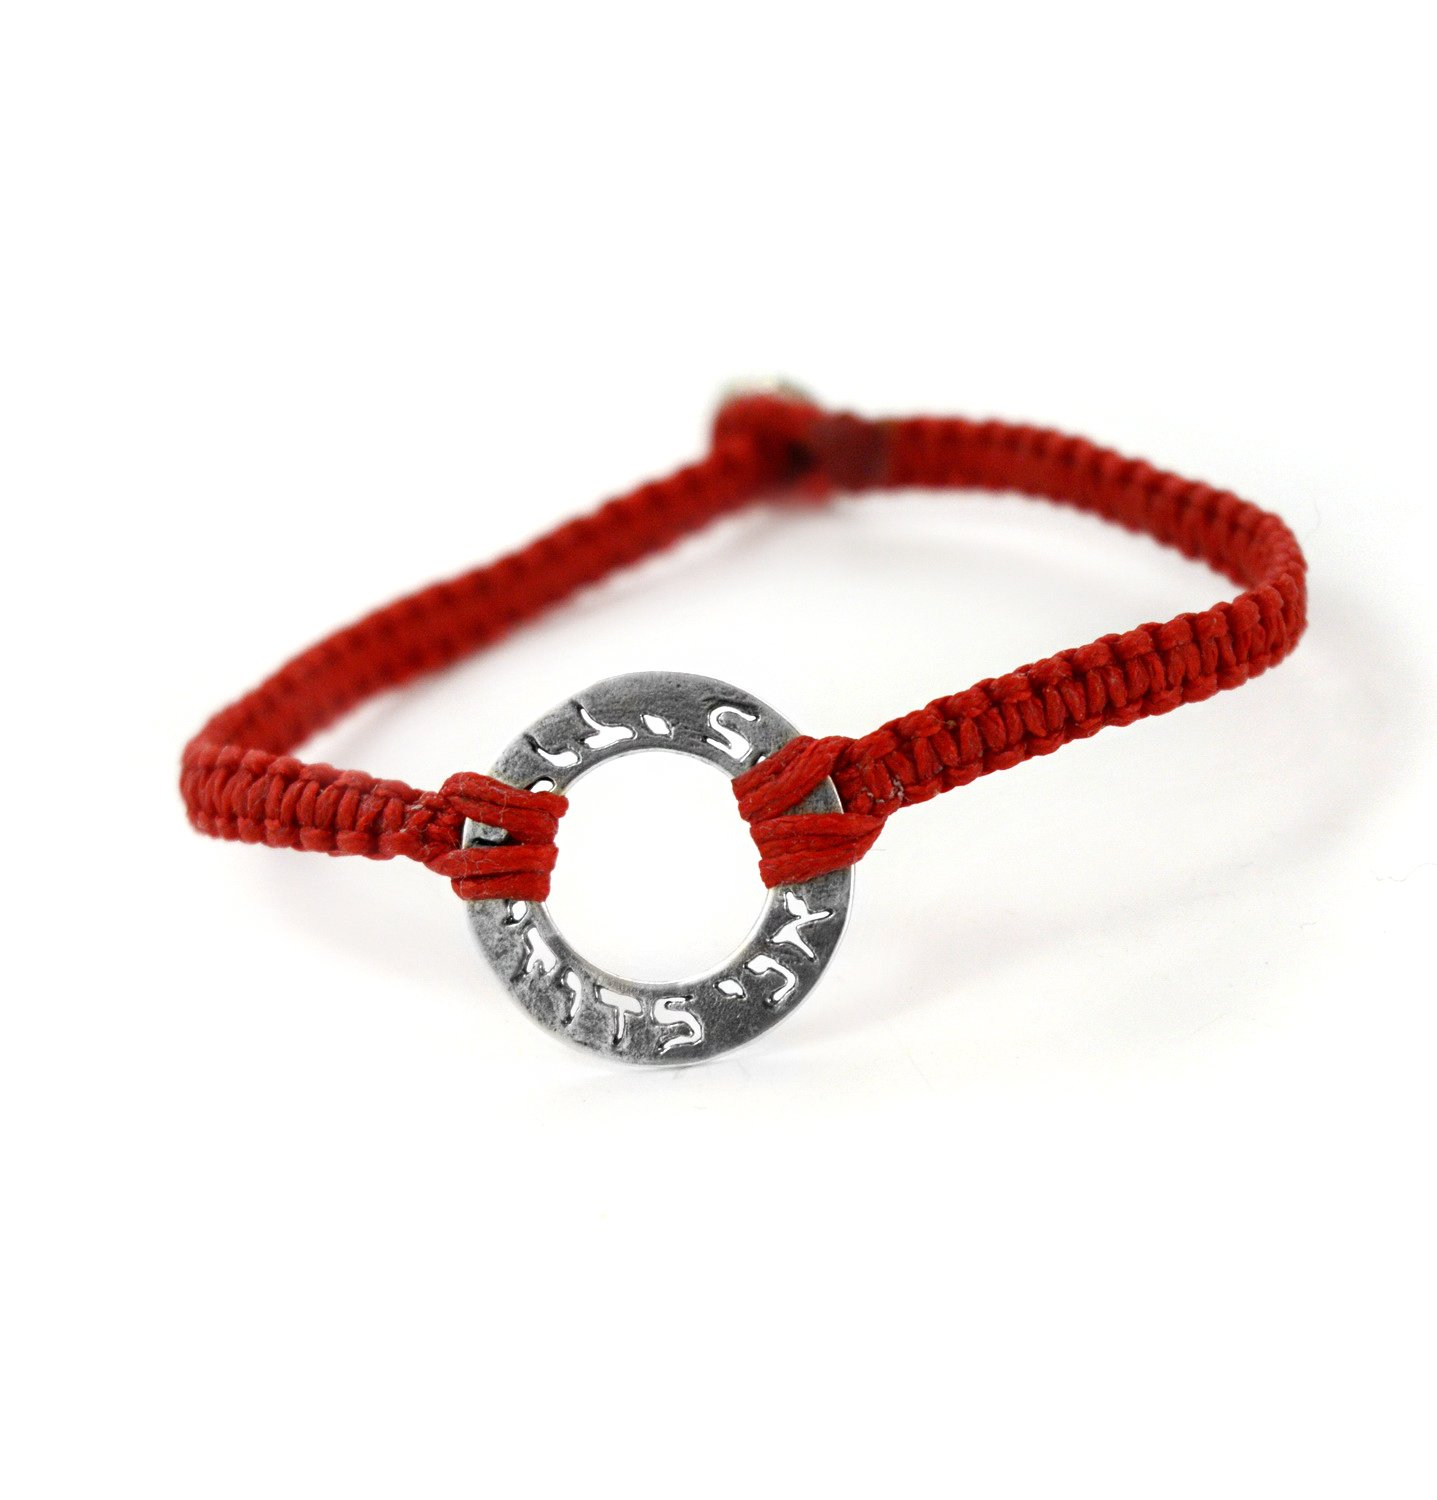 Woven Ani Ledodi Vedodi Li''I Am My Beloved and My Beloved Is Mine'' Silver Charm Red Bracelet for Men